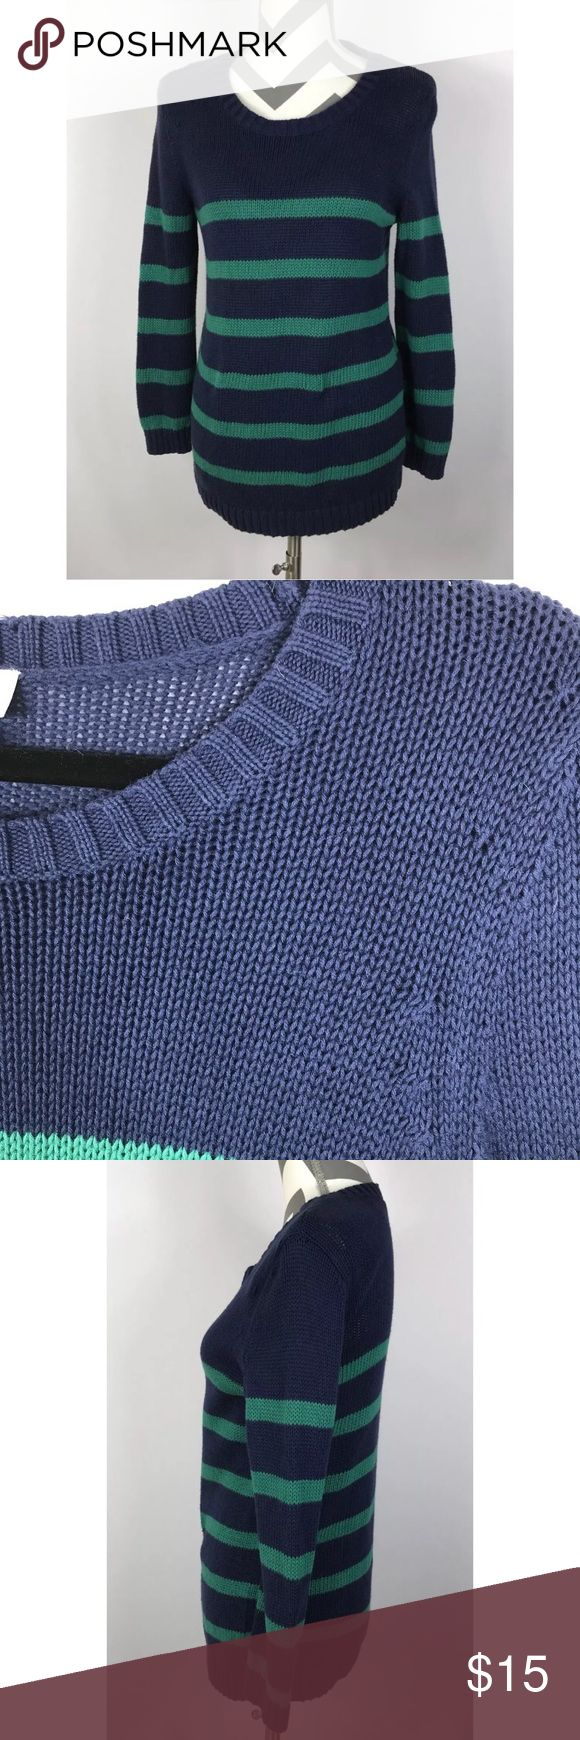 """{LOFT Outlet} Navy Blue Green Striped Sweater Very Good Pre-loved Condition! Ann Taylor LOFT Outlet Navy Blue Green Striped Cable Knit Sweater   Size: Women's Medium Measured laying down flat: 27.5"""" long, 16.5"""" across bust, 22"""" long sleeves Material: 100% Cotton Description: Thick chunky material, stretchy, boat neck, long sleeves, striped pattern  Comes from a Smoke Free Home ID 44 LOFT Sweaters"""